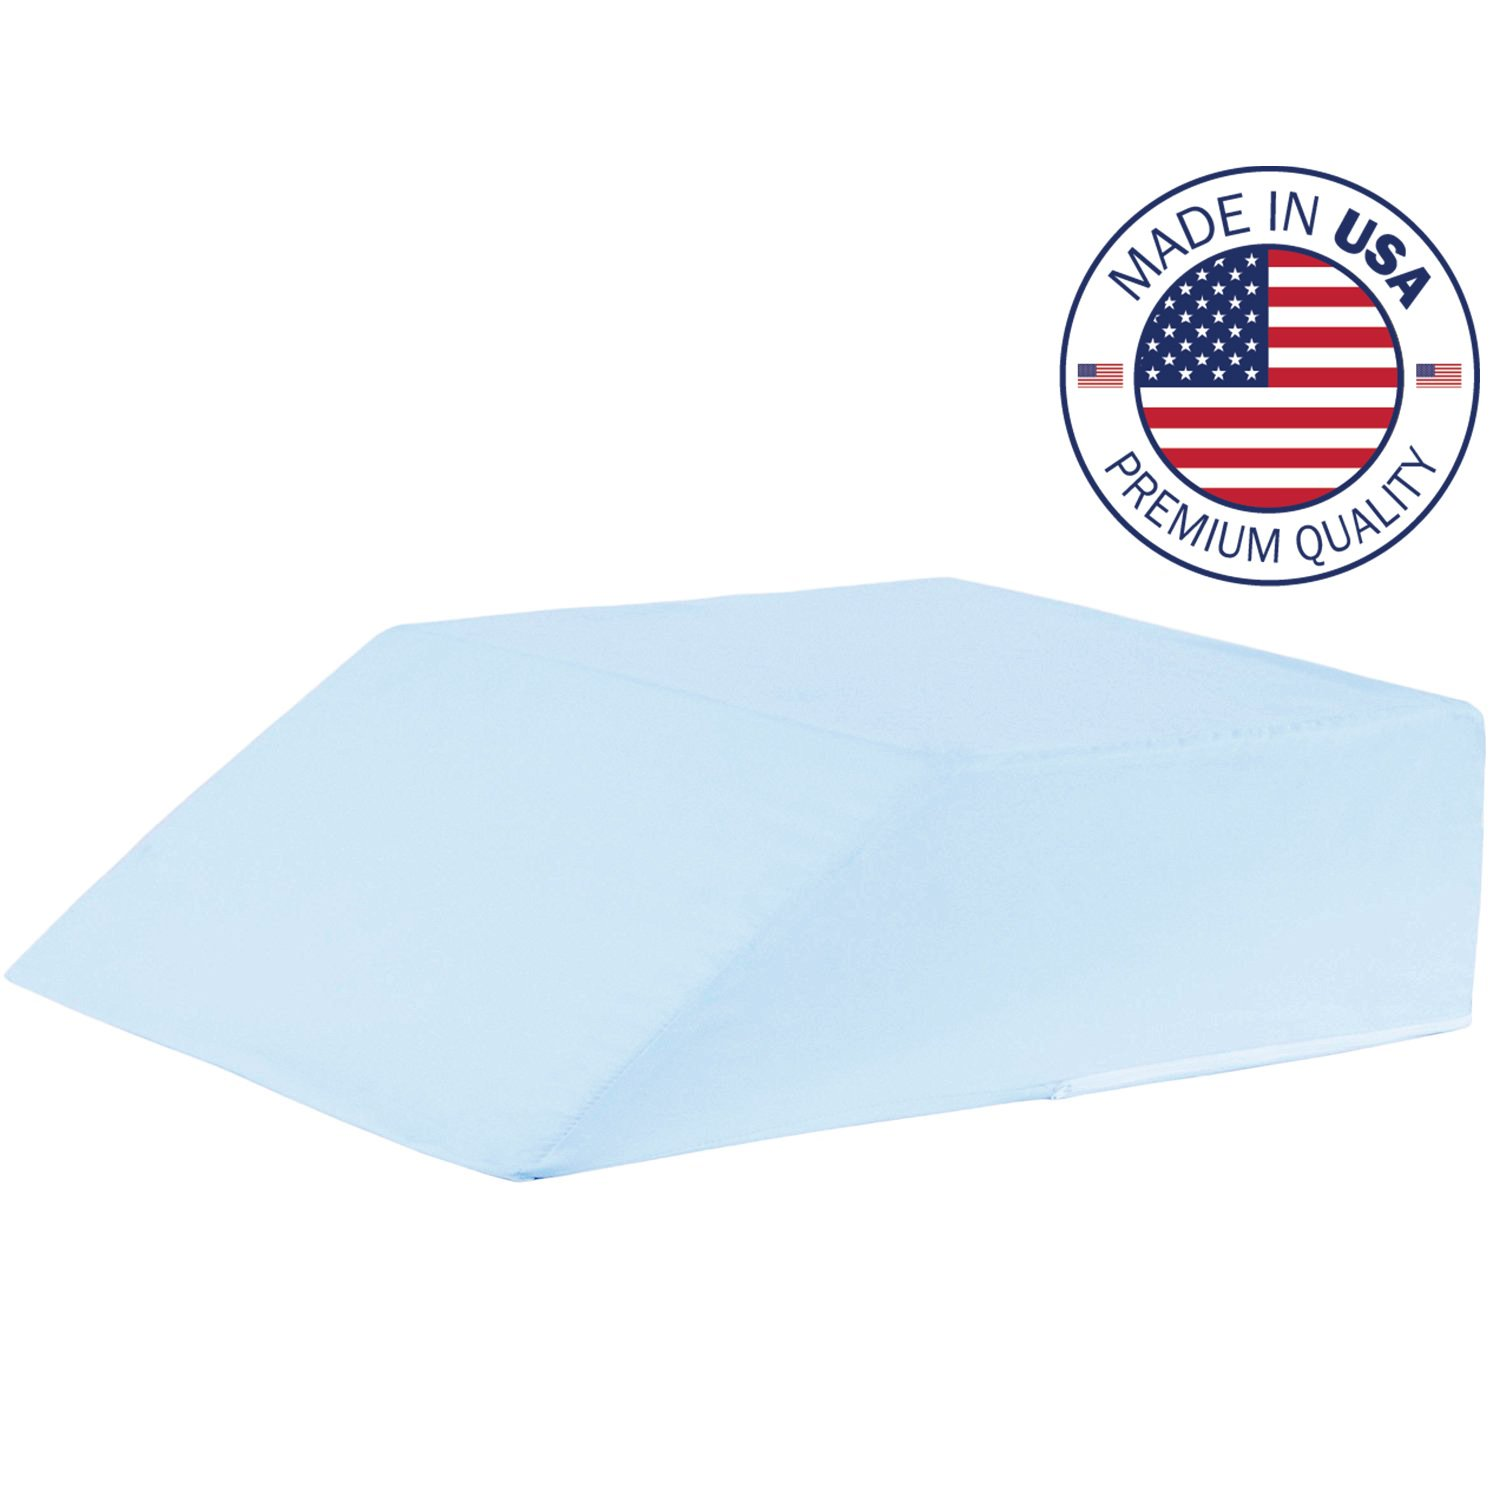 Vaunn Medical Ortho Bed Wedge Leg and Body Pillow 8'' x 20'' x 24'' with Blue Polyester/Cotton Cover